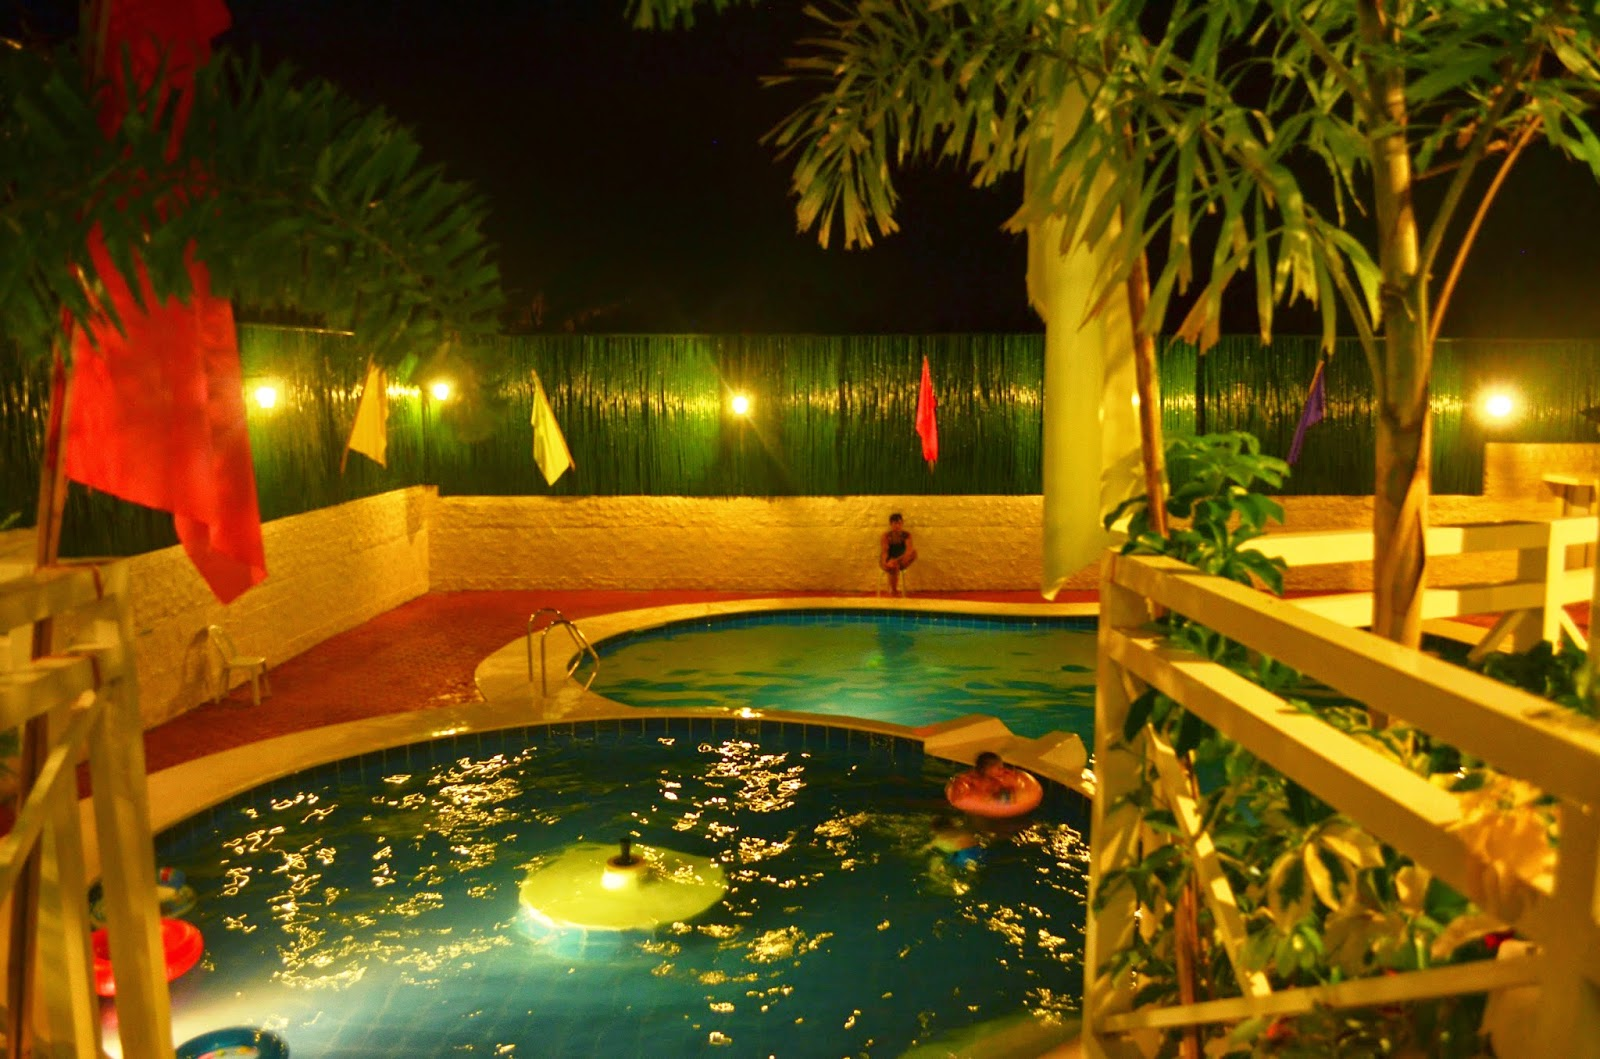 Best beach resorts in batangas suncrest resort with swimming pool in taal batangas for Batangas beach and swimming pool resort